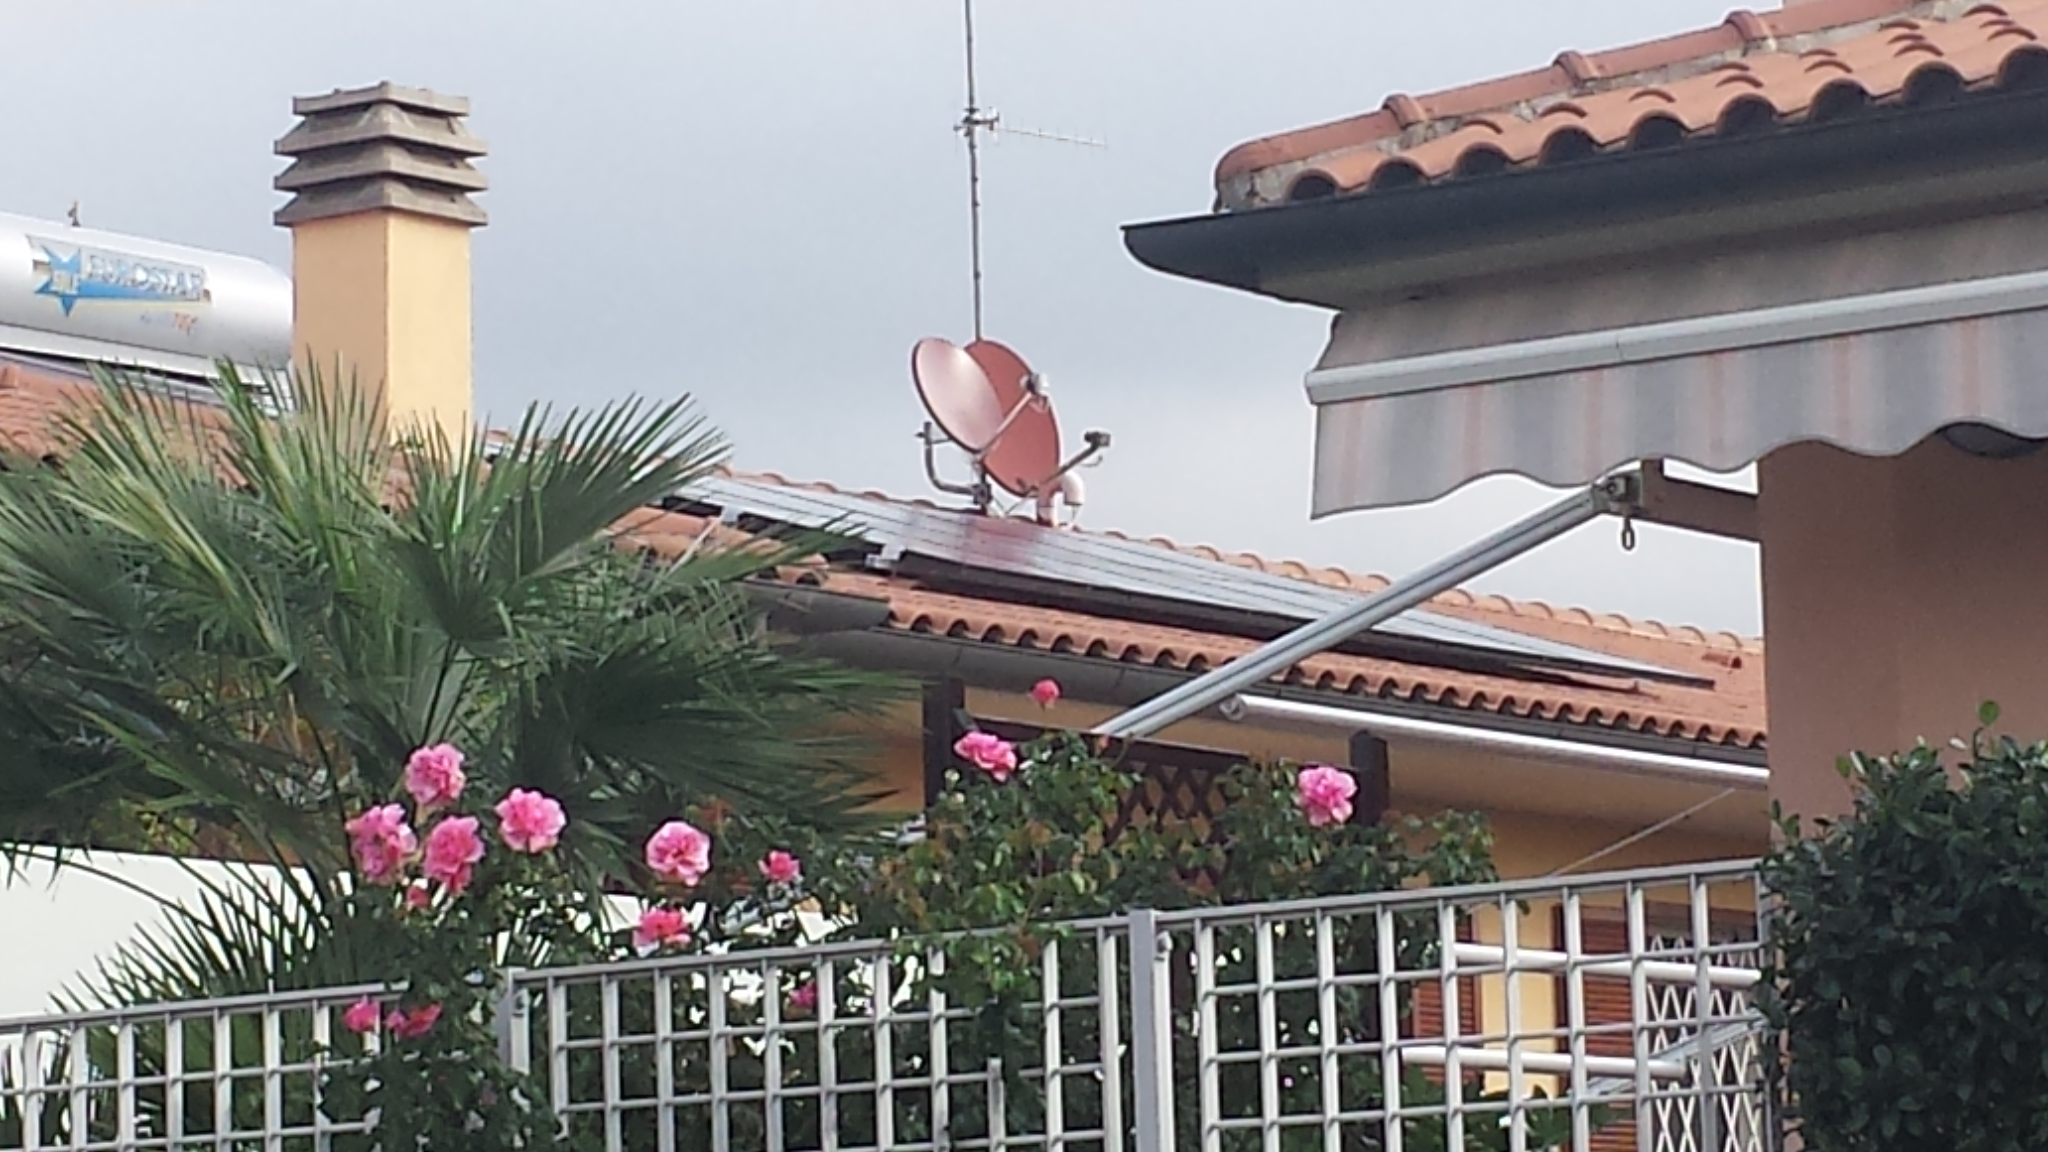 Impianto Fotovoltaico in Scambio Sul posto Lightland SunPower, Follonica, Grosseto,